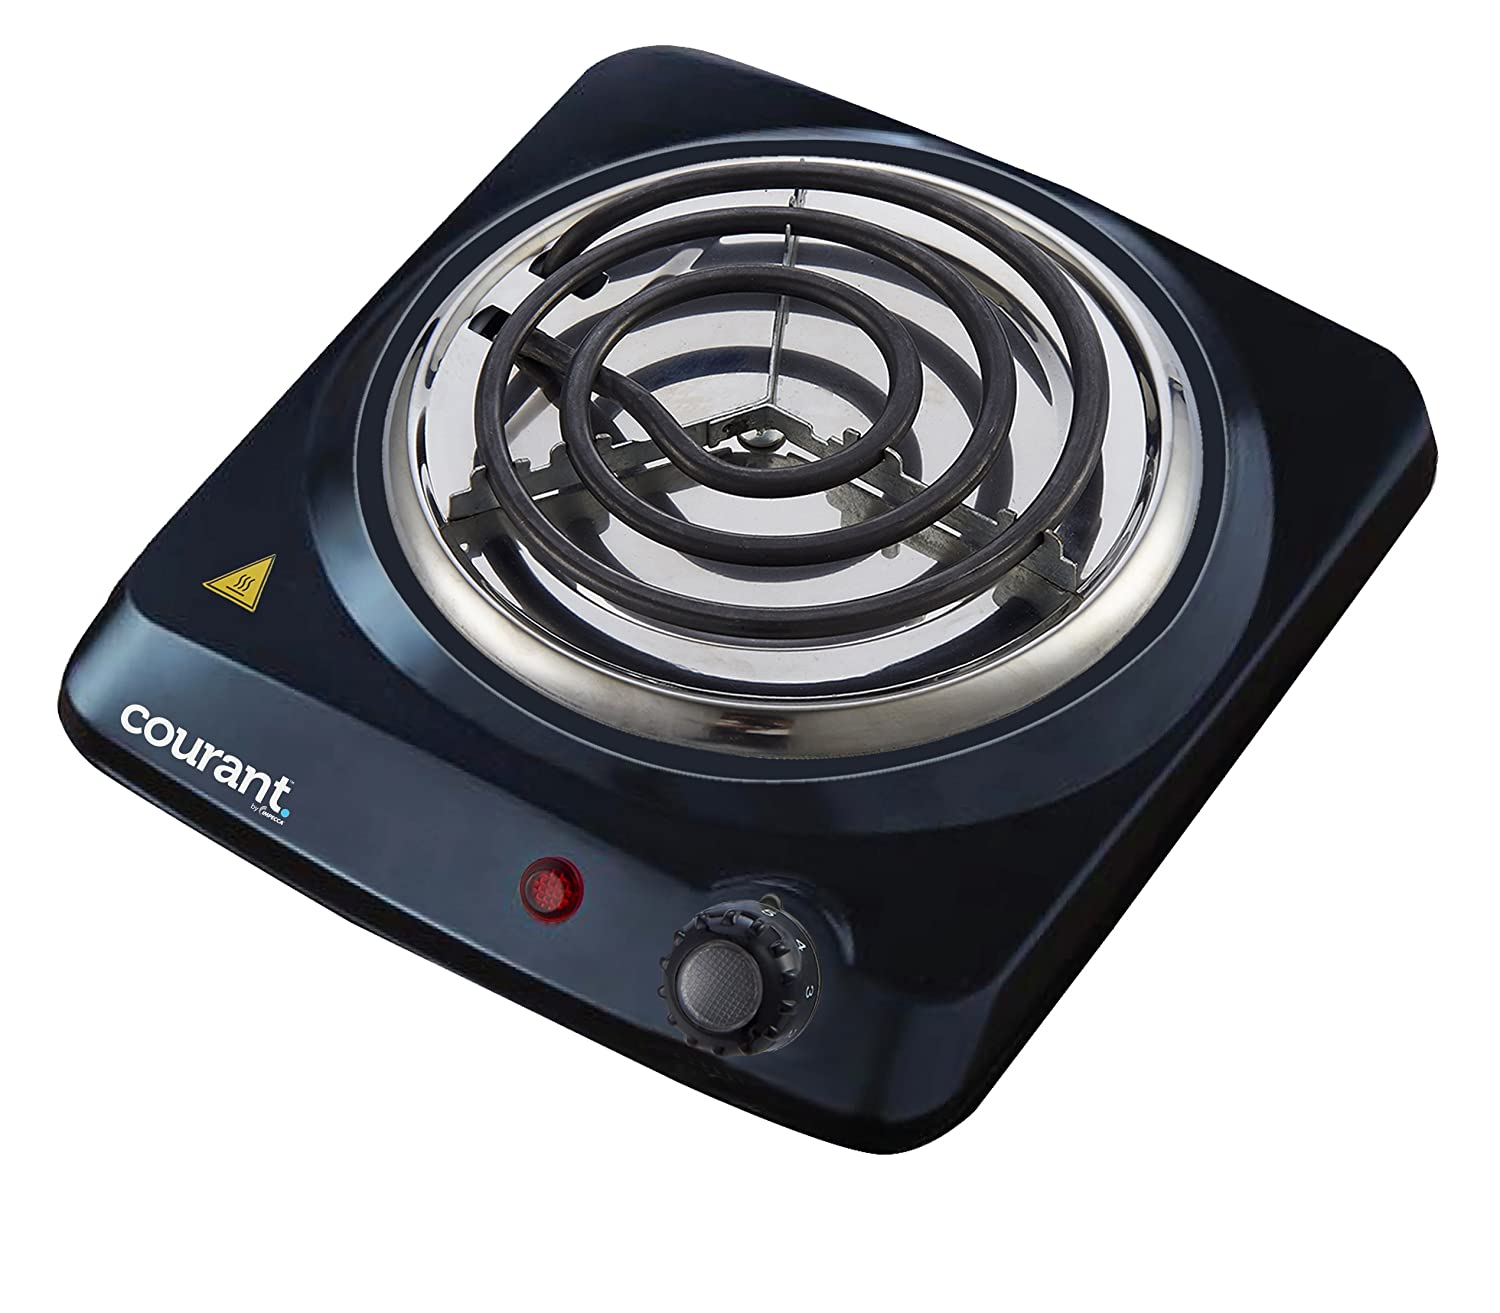 Courant Electric Burner, Single Buffet Countertop Hotplate, 1000W Portable Cooktop, Black